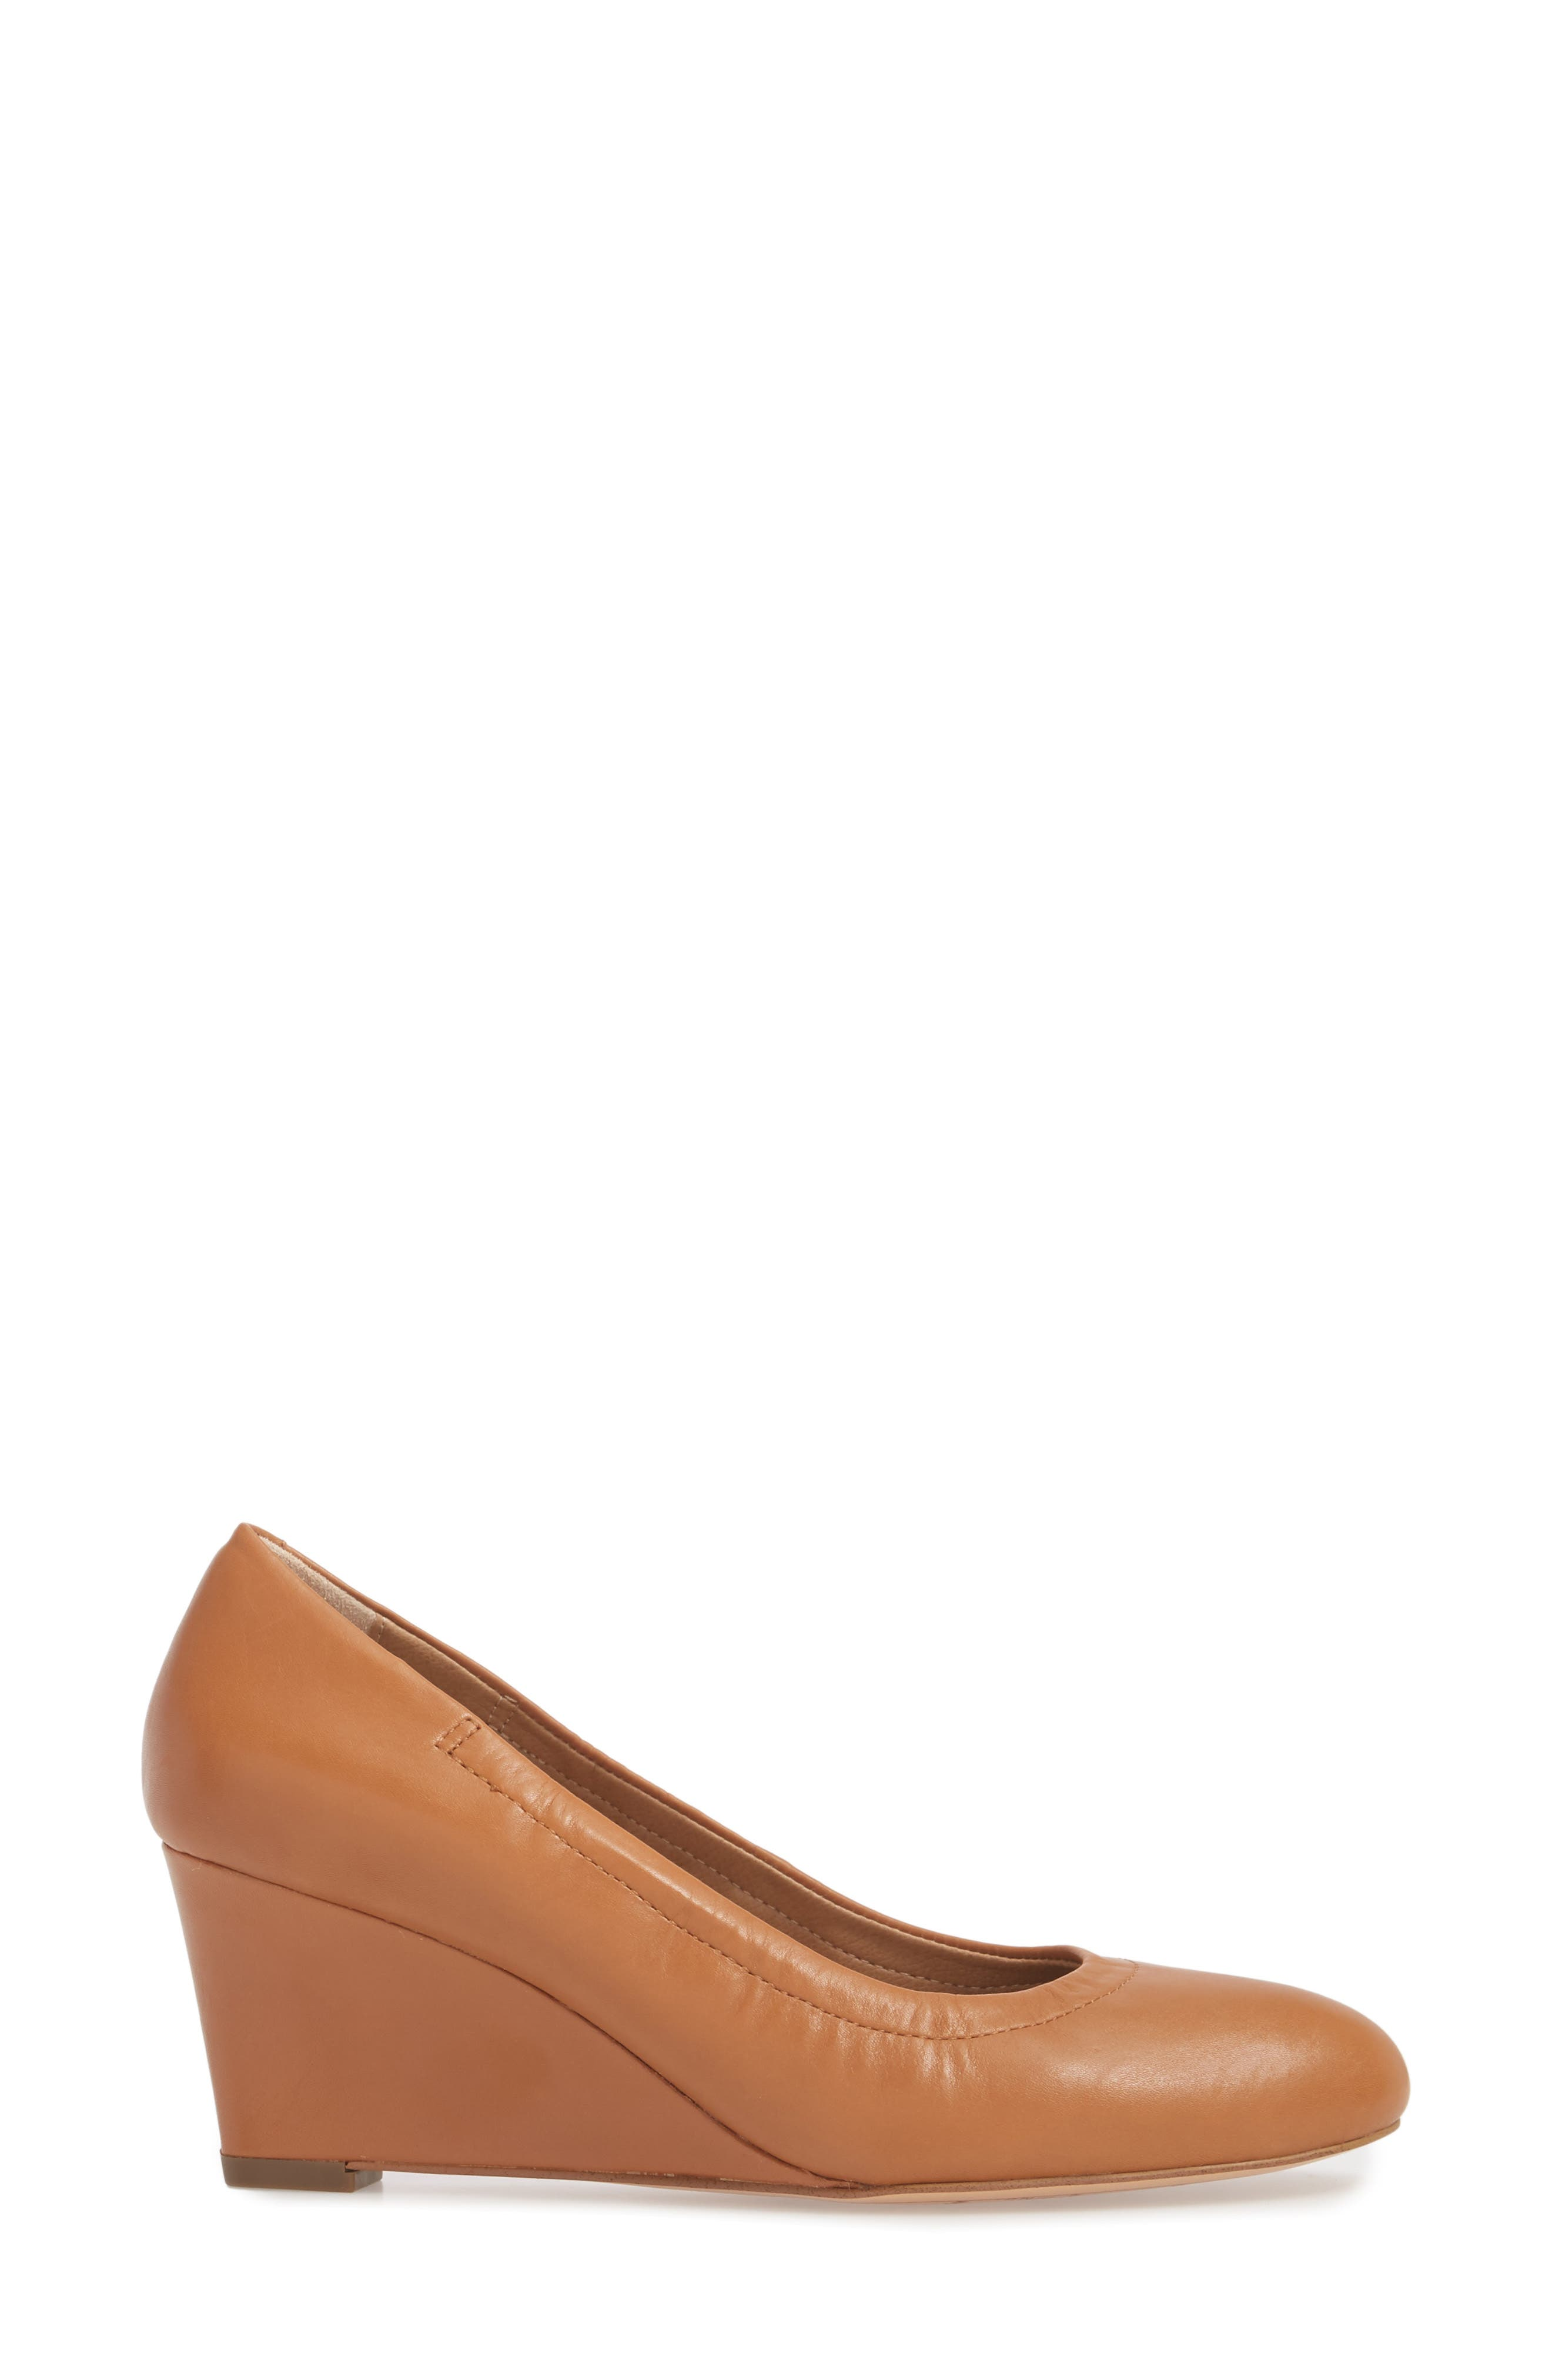 Camden Wedge,                             Alternate thumbnail 3, color,                             Tan Leather